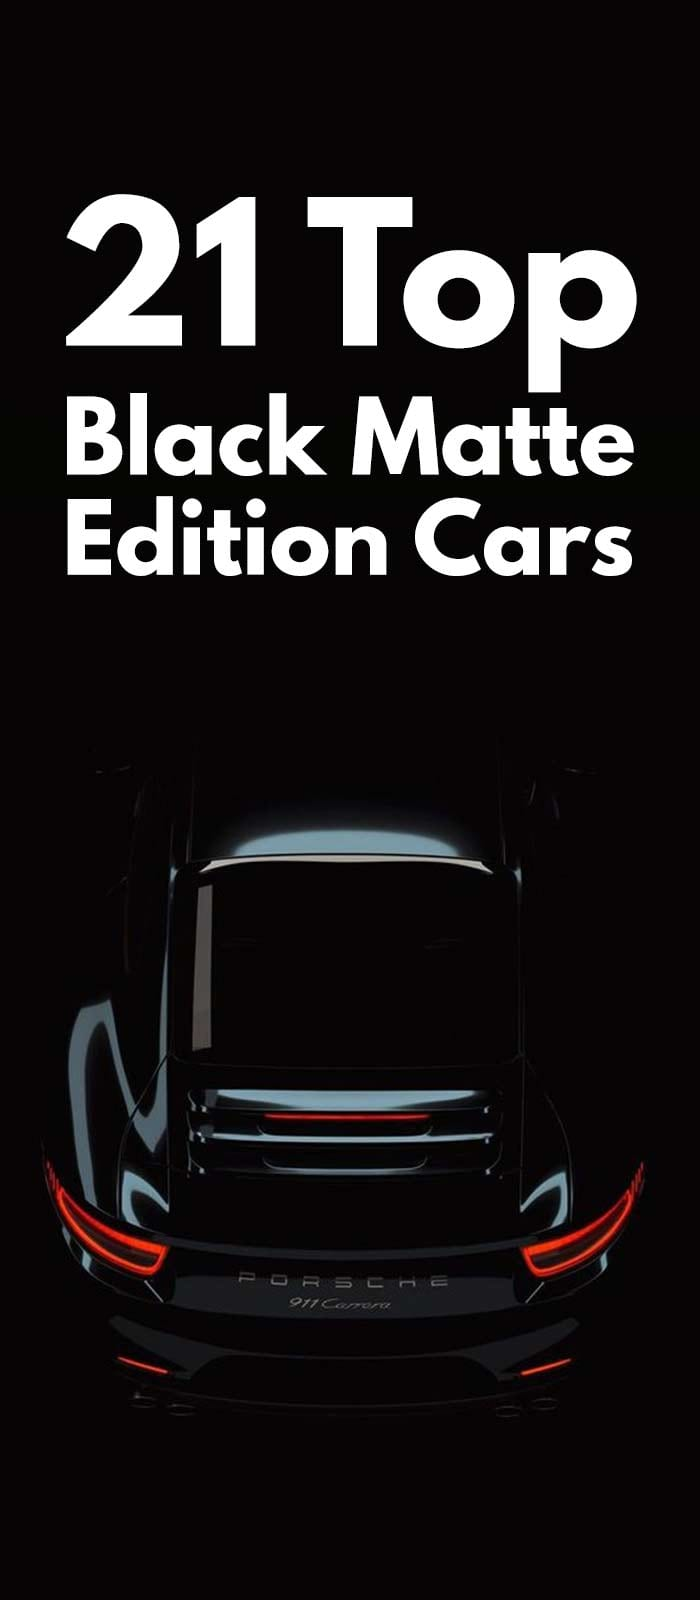 TOP BLACK MATTE EDITION CARS!